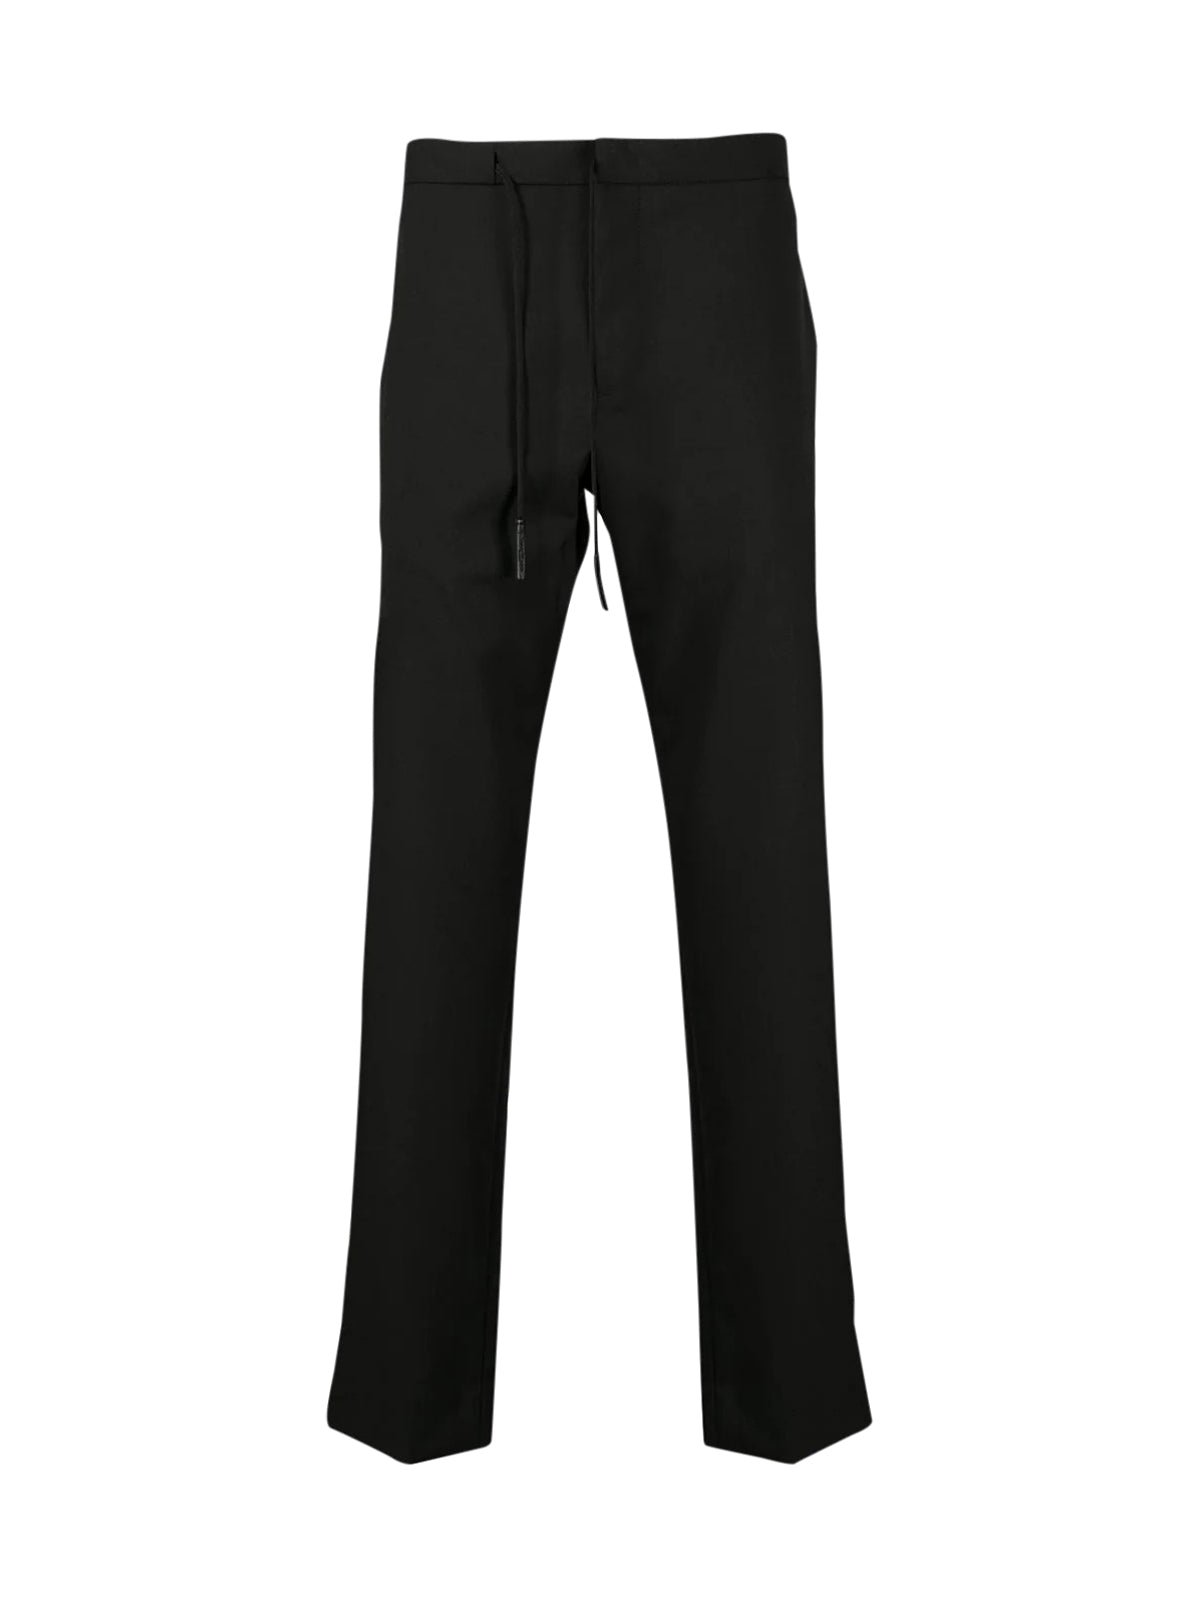 four stitch detail tailored trousers